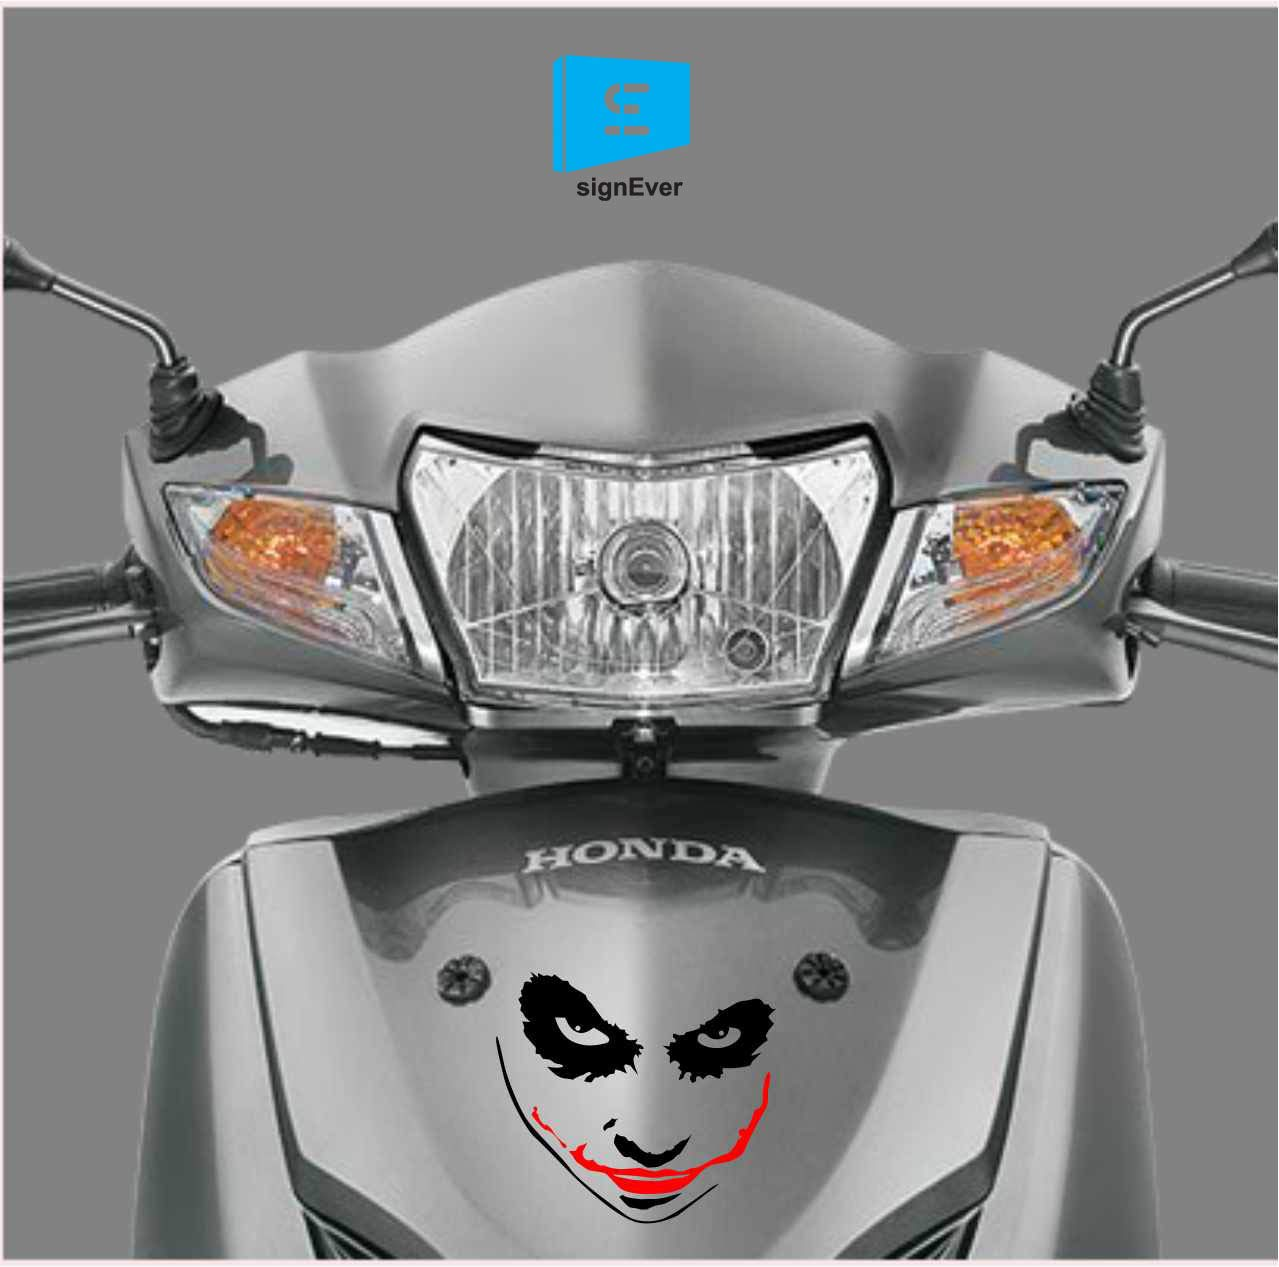 Sign ever activa stickers honda red and black joker bikes sides helmet hood l x h 15 x 8 cms amazon in car motorbike